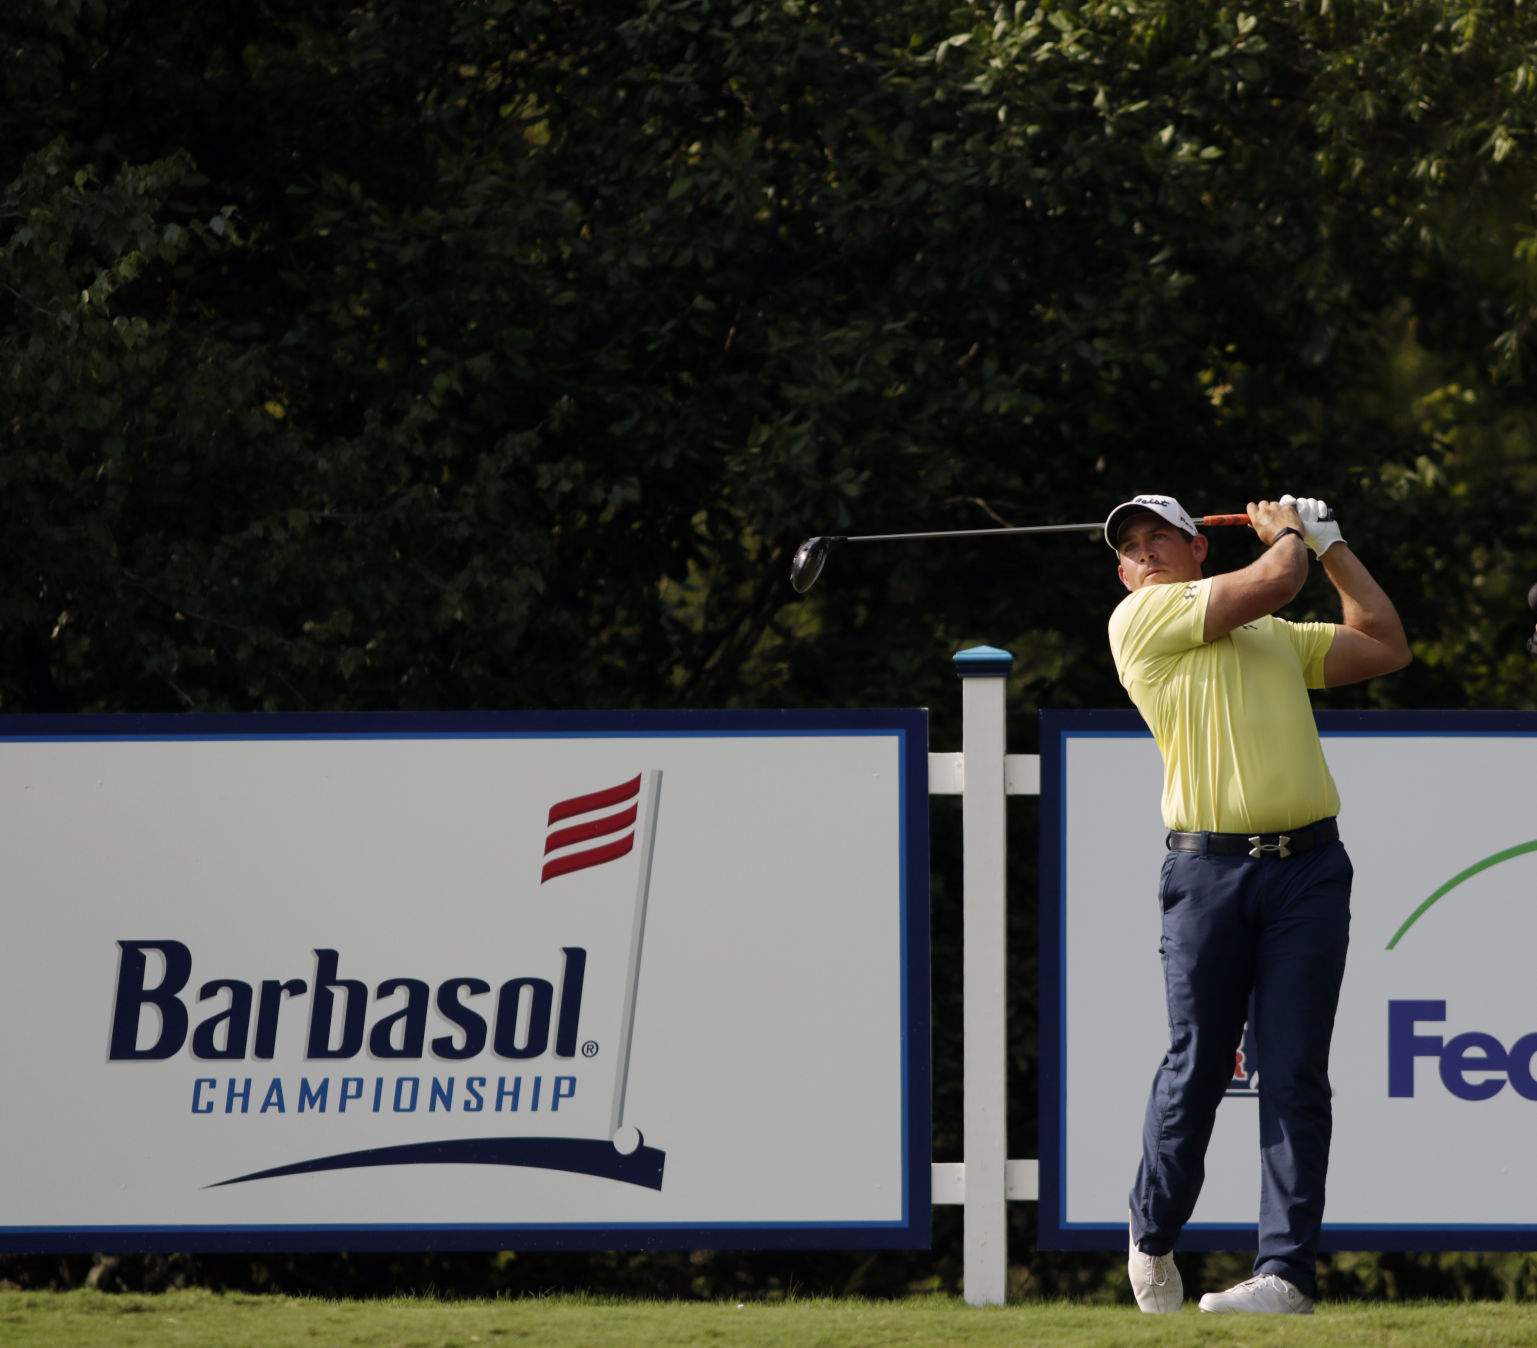 Tringale, Blair, Flores co-lead suspended Barbasol Championship